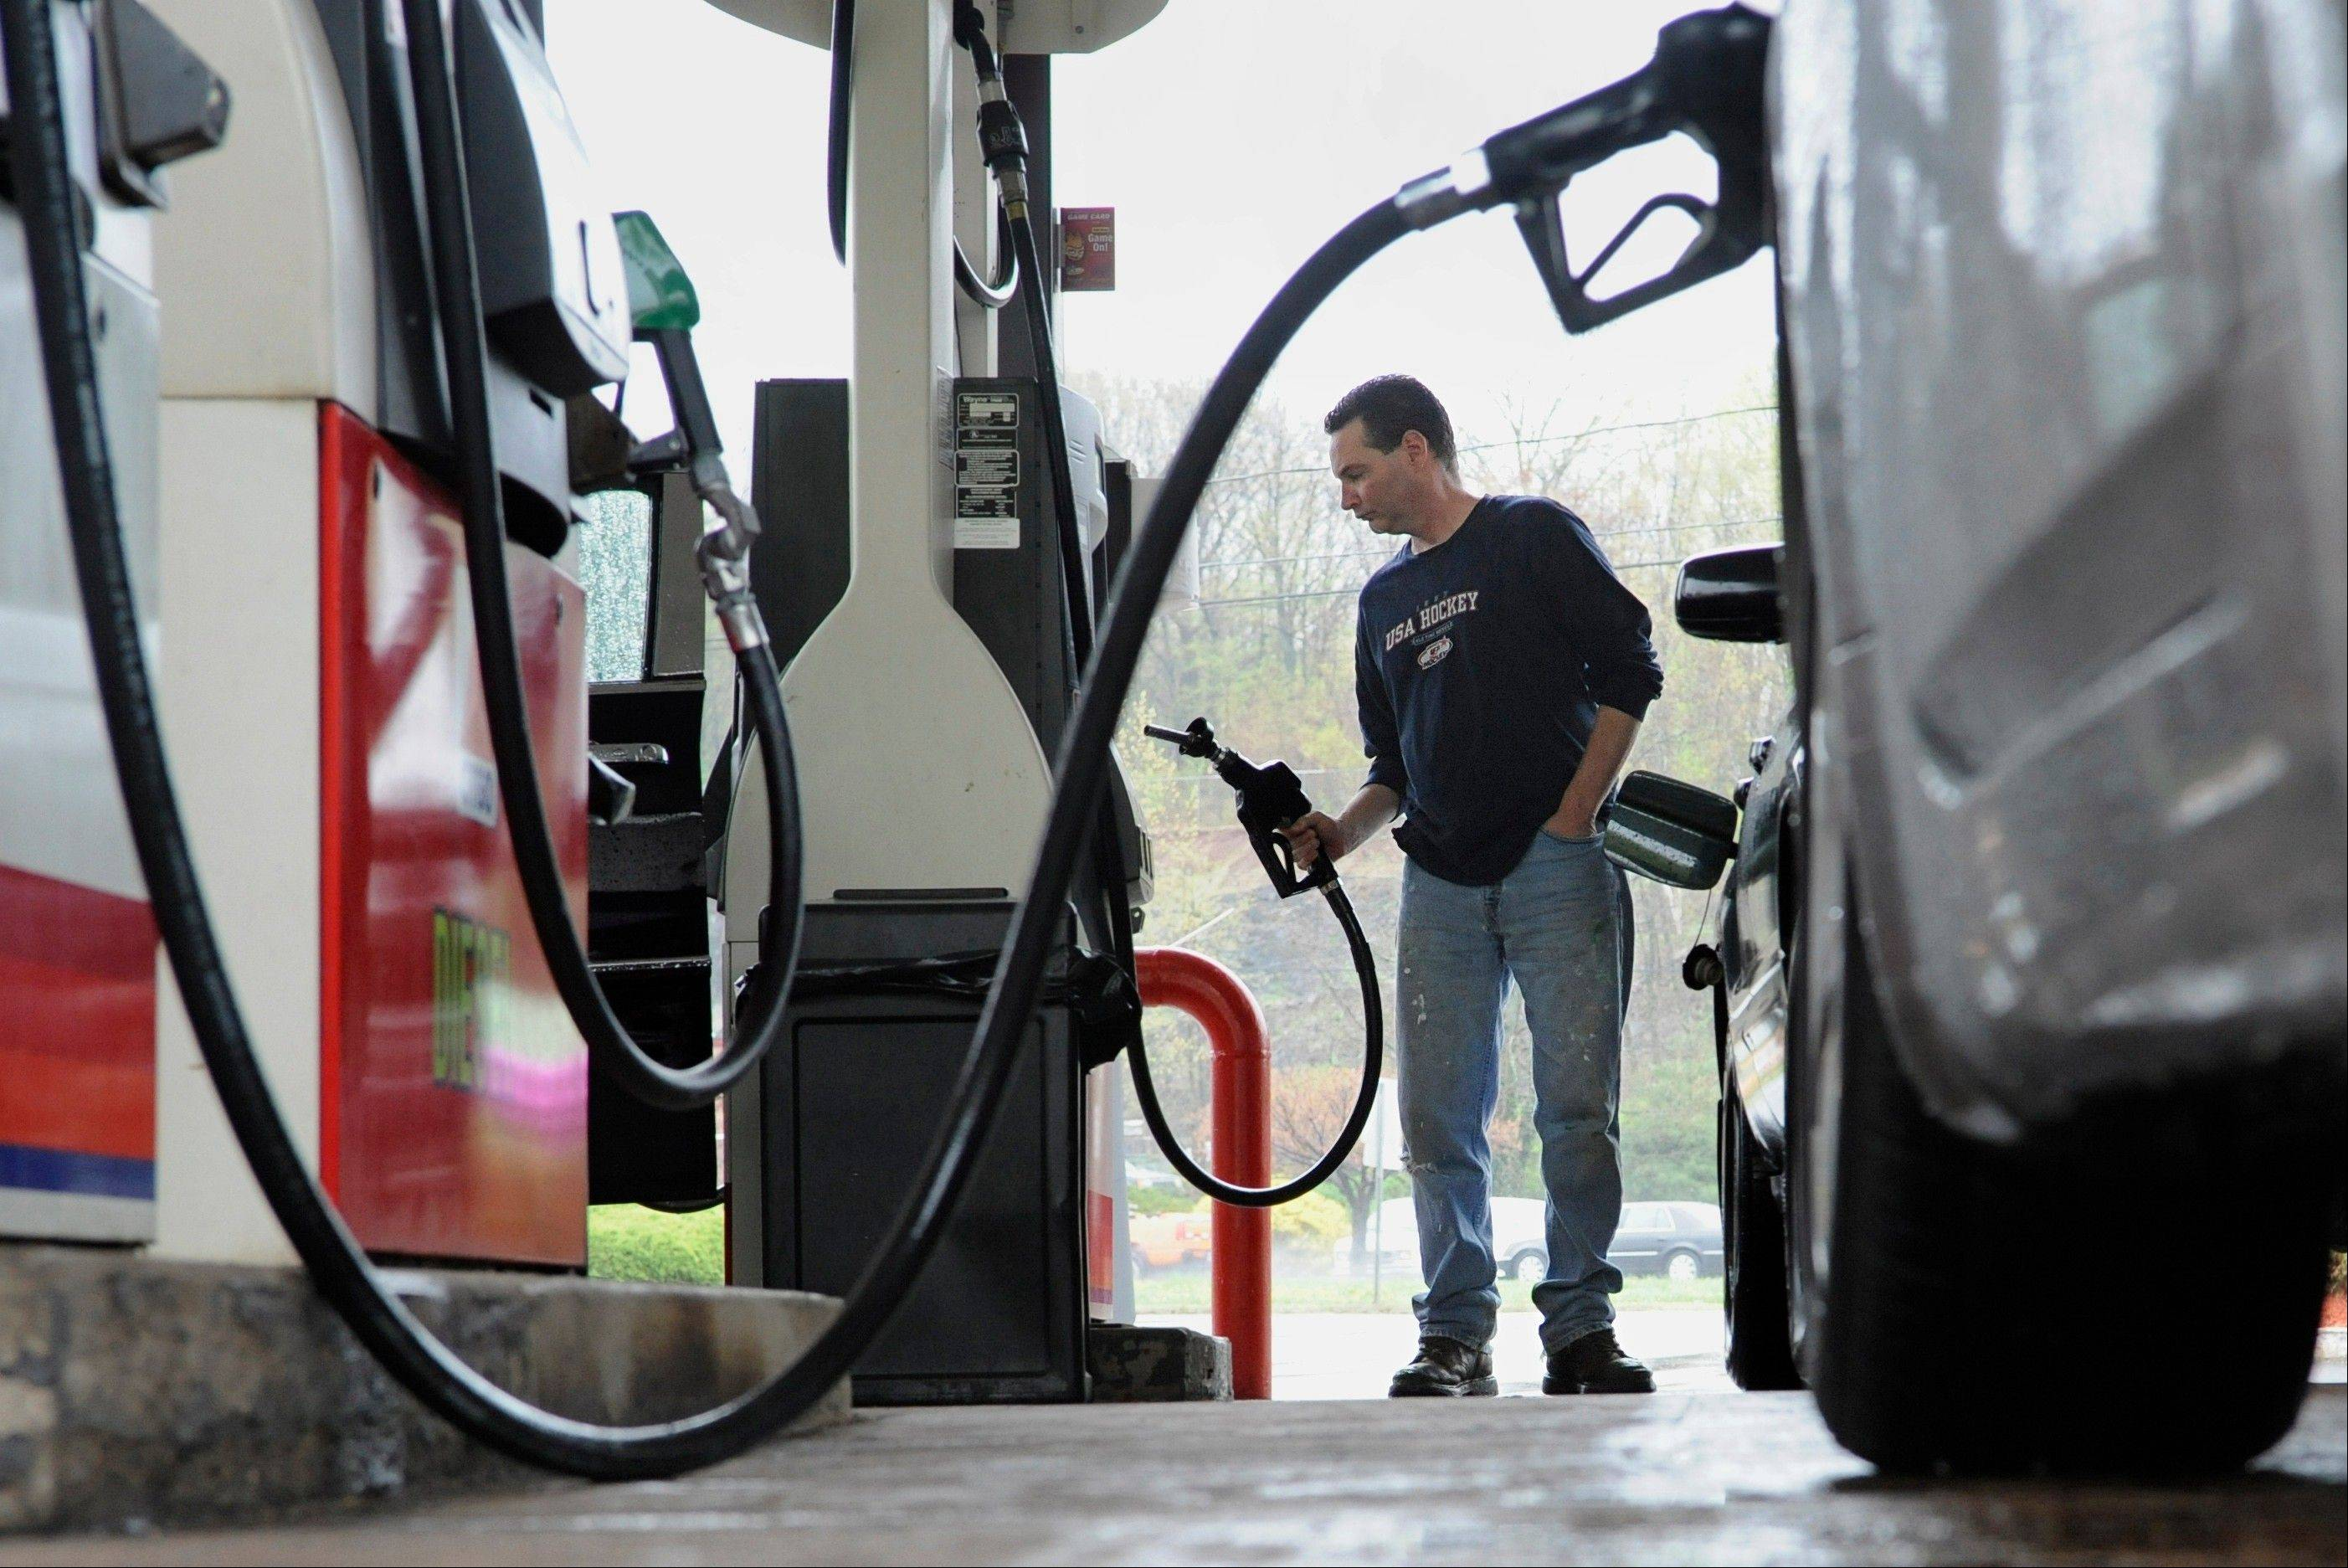 First it was a tax hike. Now consumers are looking at a higher than expected gasoline bill for 2013. The government on Tuesday boosted its forecast for gasoline prices this year by 11 cents to an average of $3.55 a gallon.